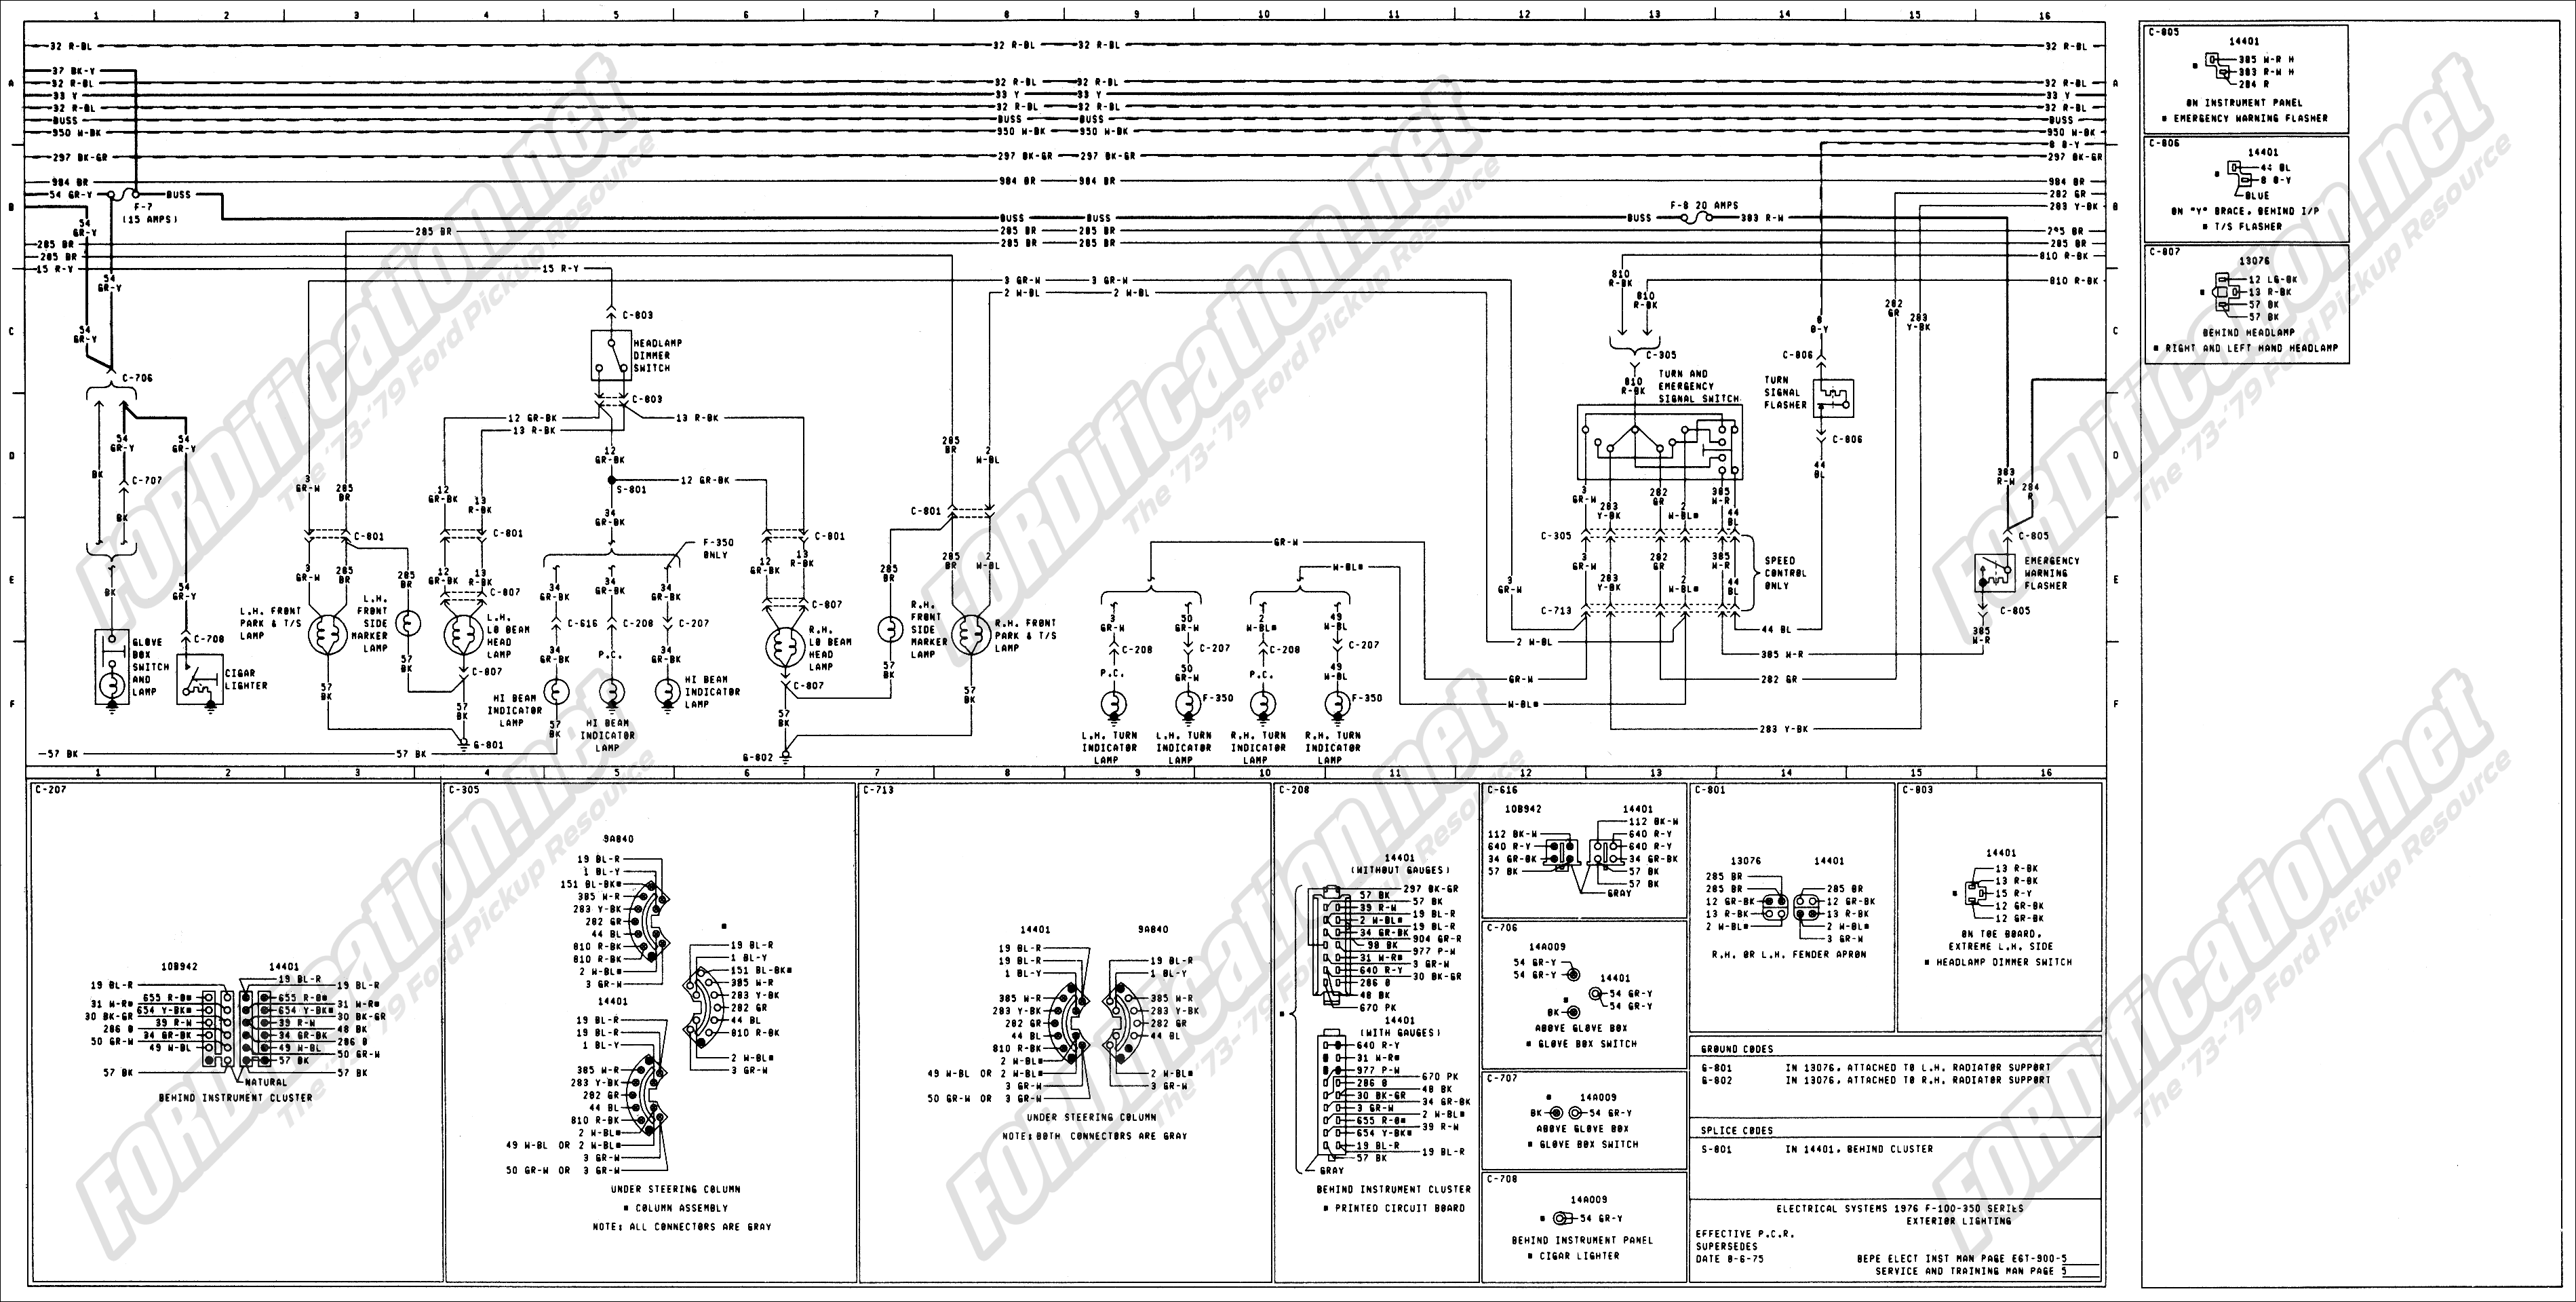 1975 F250 Ignition Wiring Schematic Diagrams 1973 Camaro Ac Diagram 1979 Ford Truck Schematics Fordification Net 2000 Radio